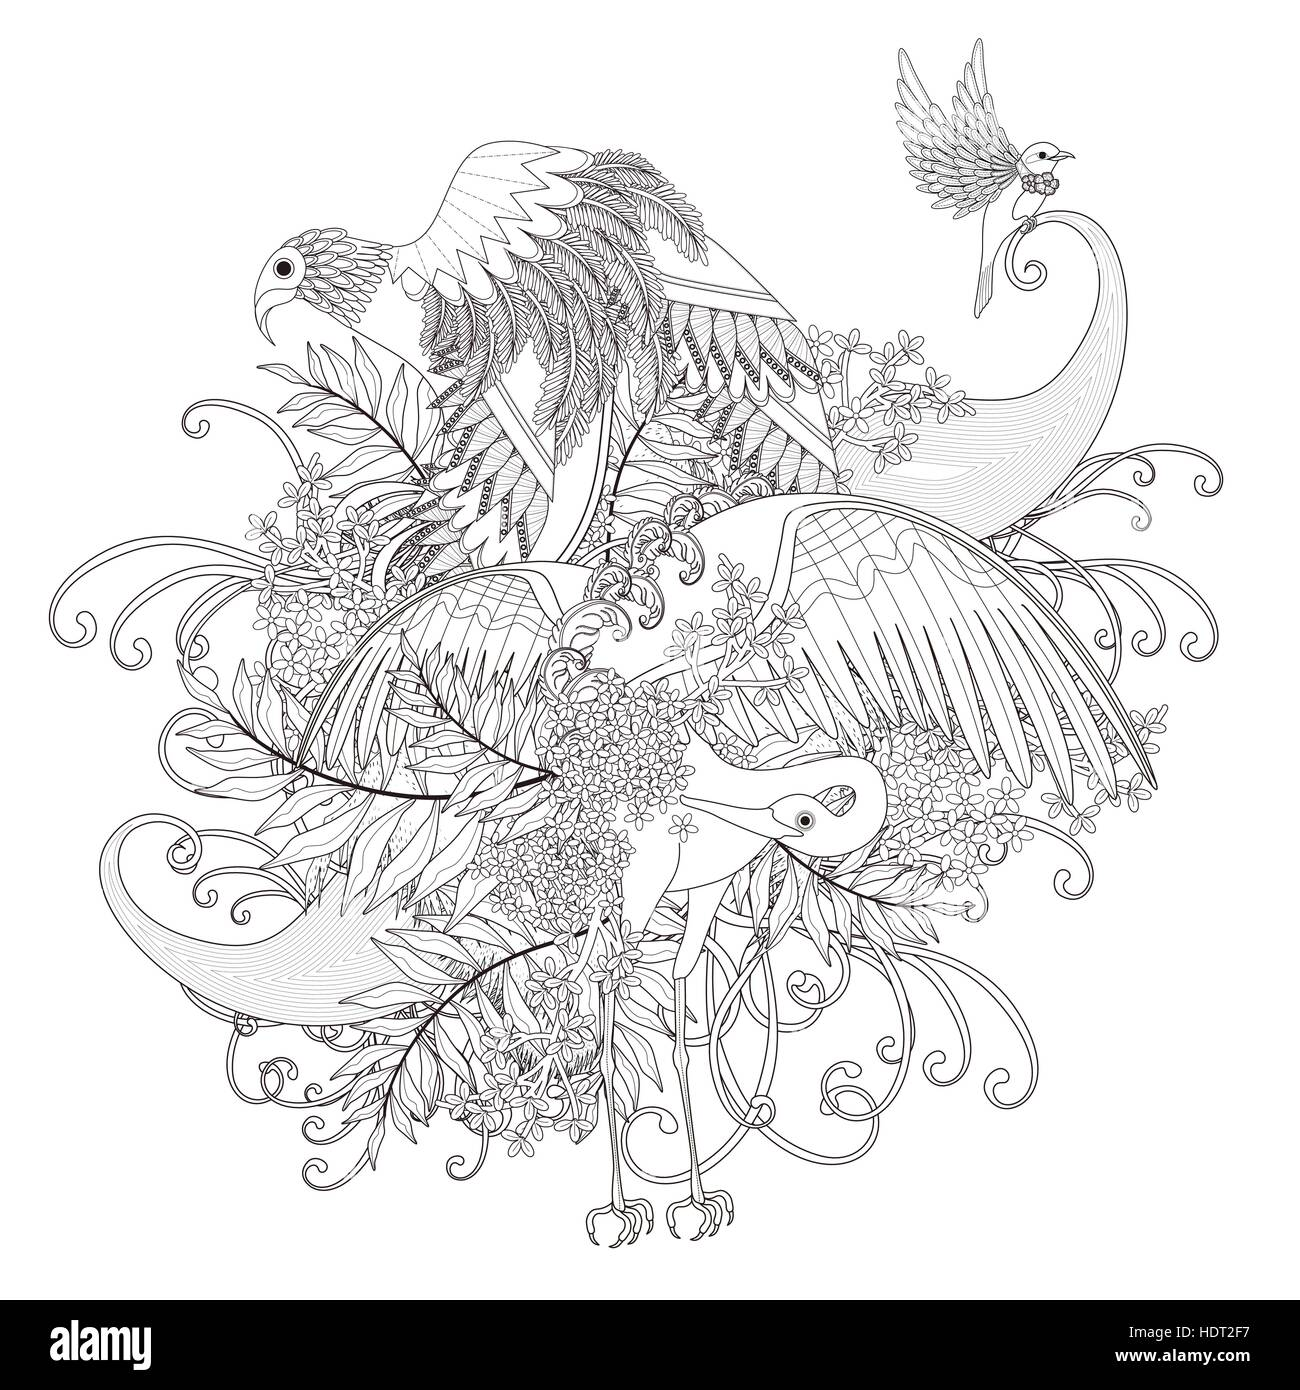 coloring pages feathers | Coloring Page Eagle,Lucy Learns Eagle ... | 1390x1300